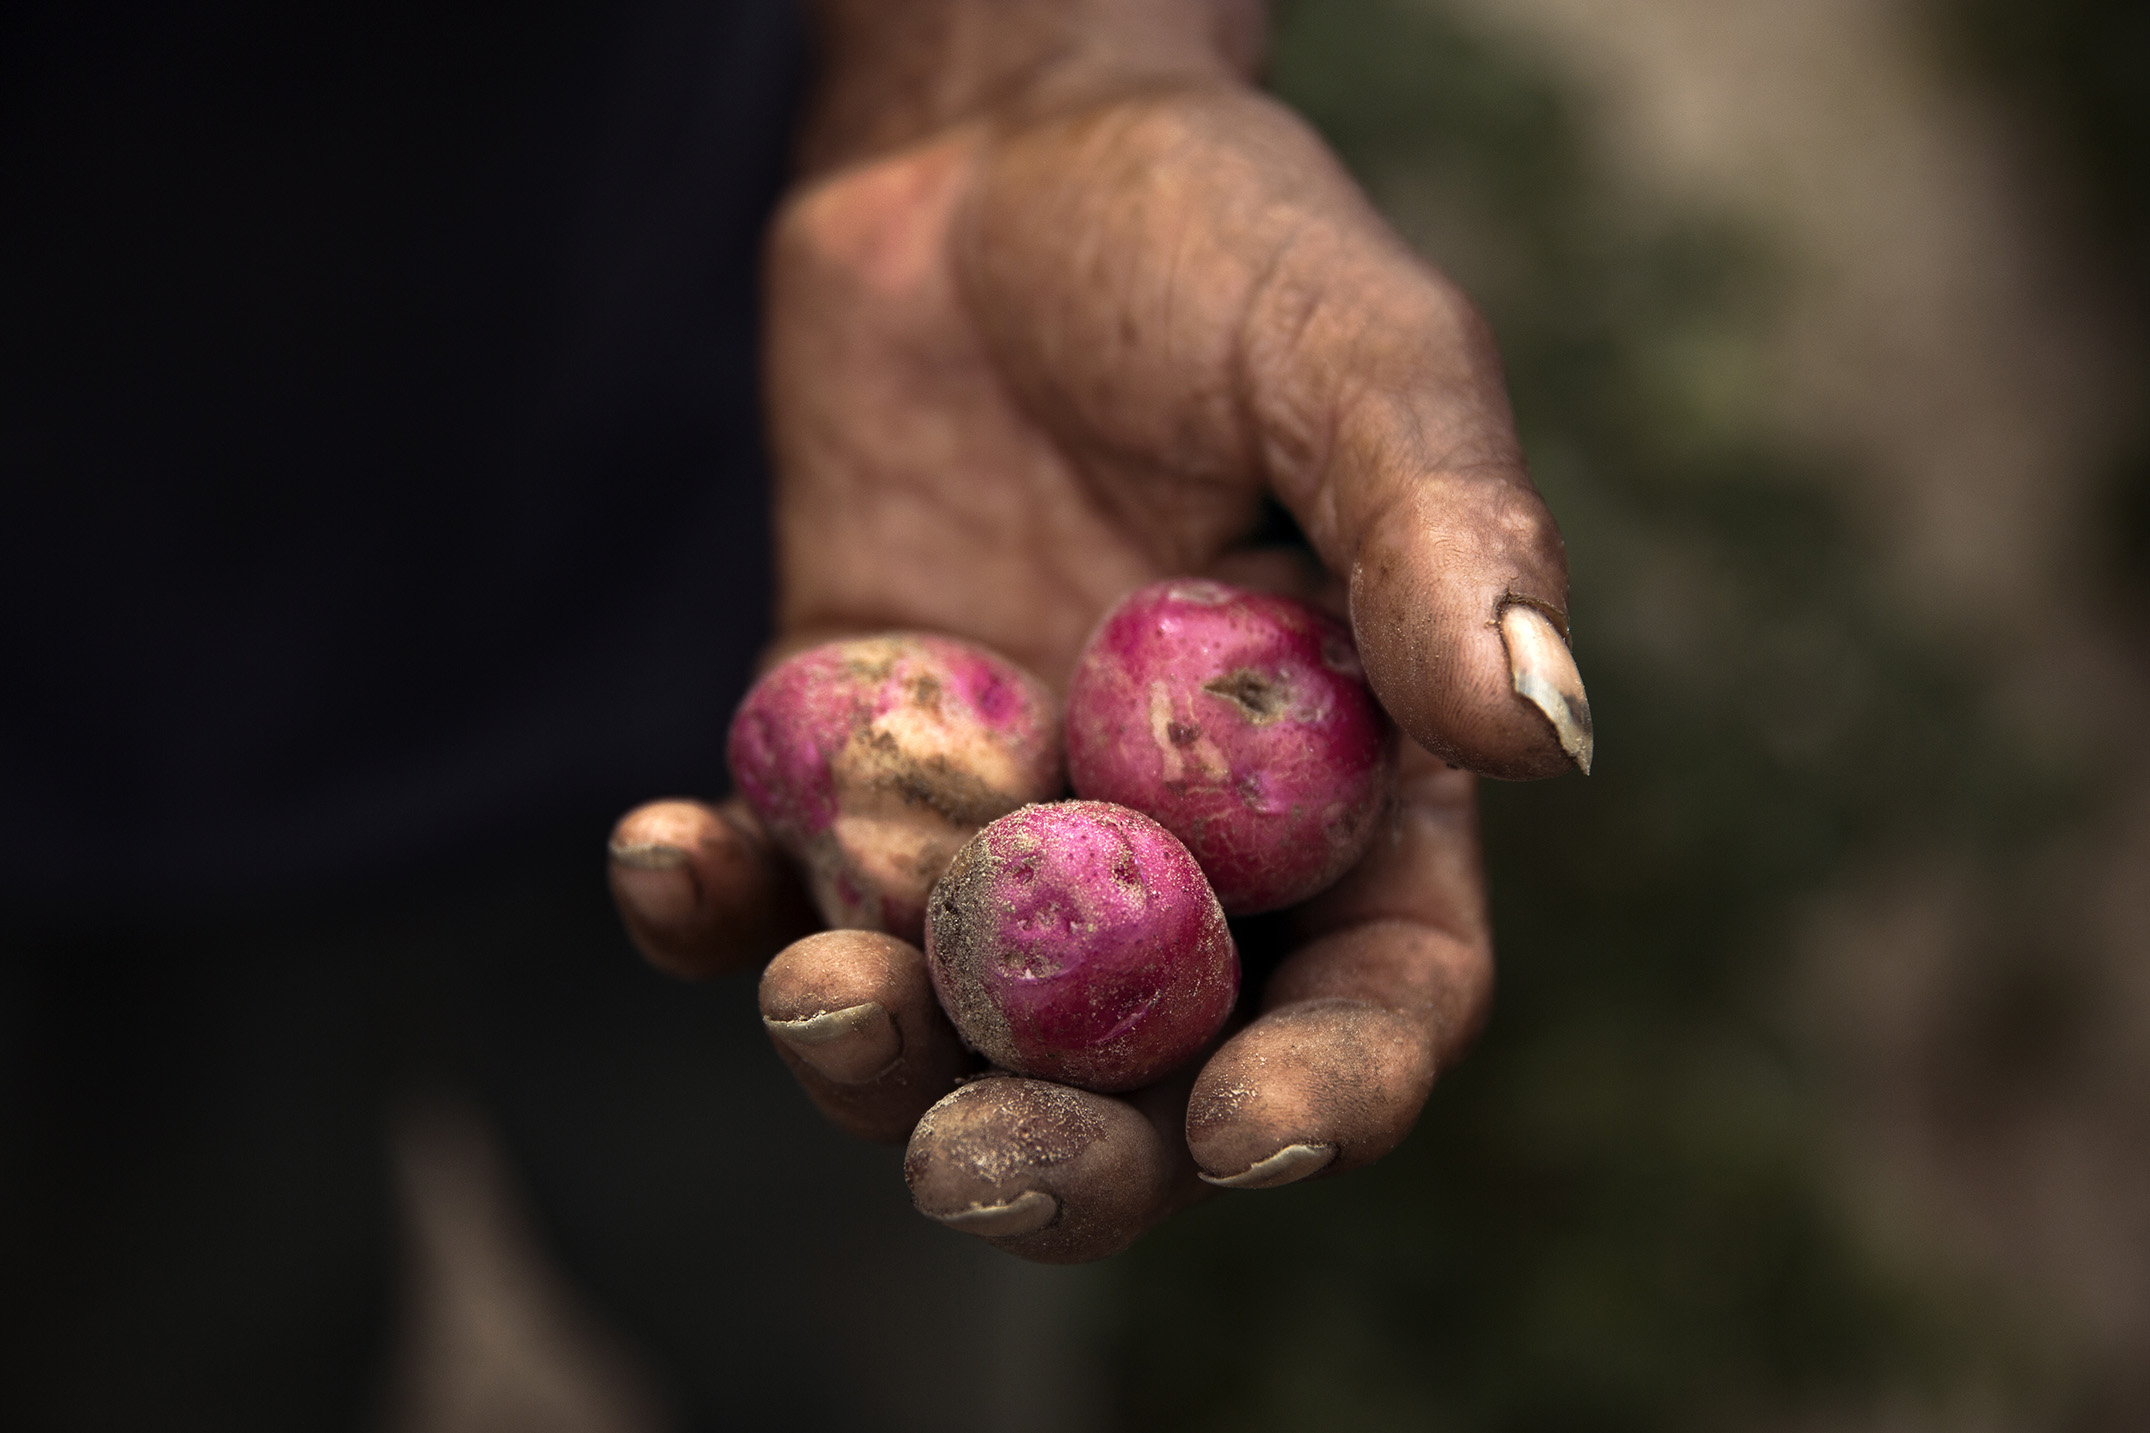 Mike Kane | Rural Georgia potato farmer | Seattle documentary, editorial, and commercial photography